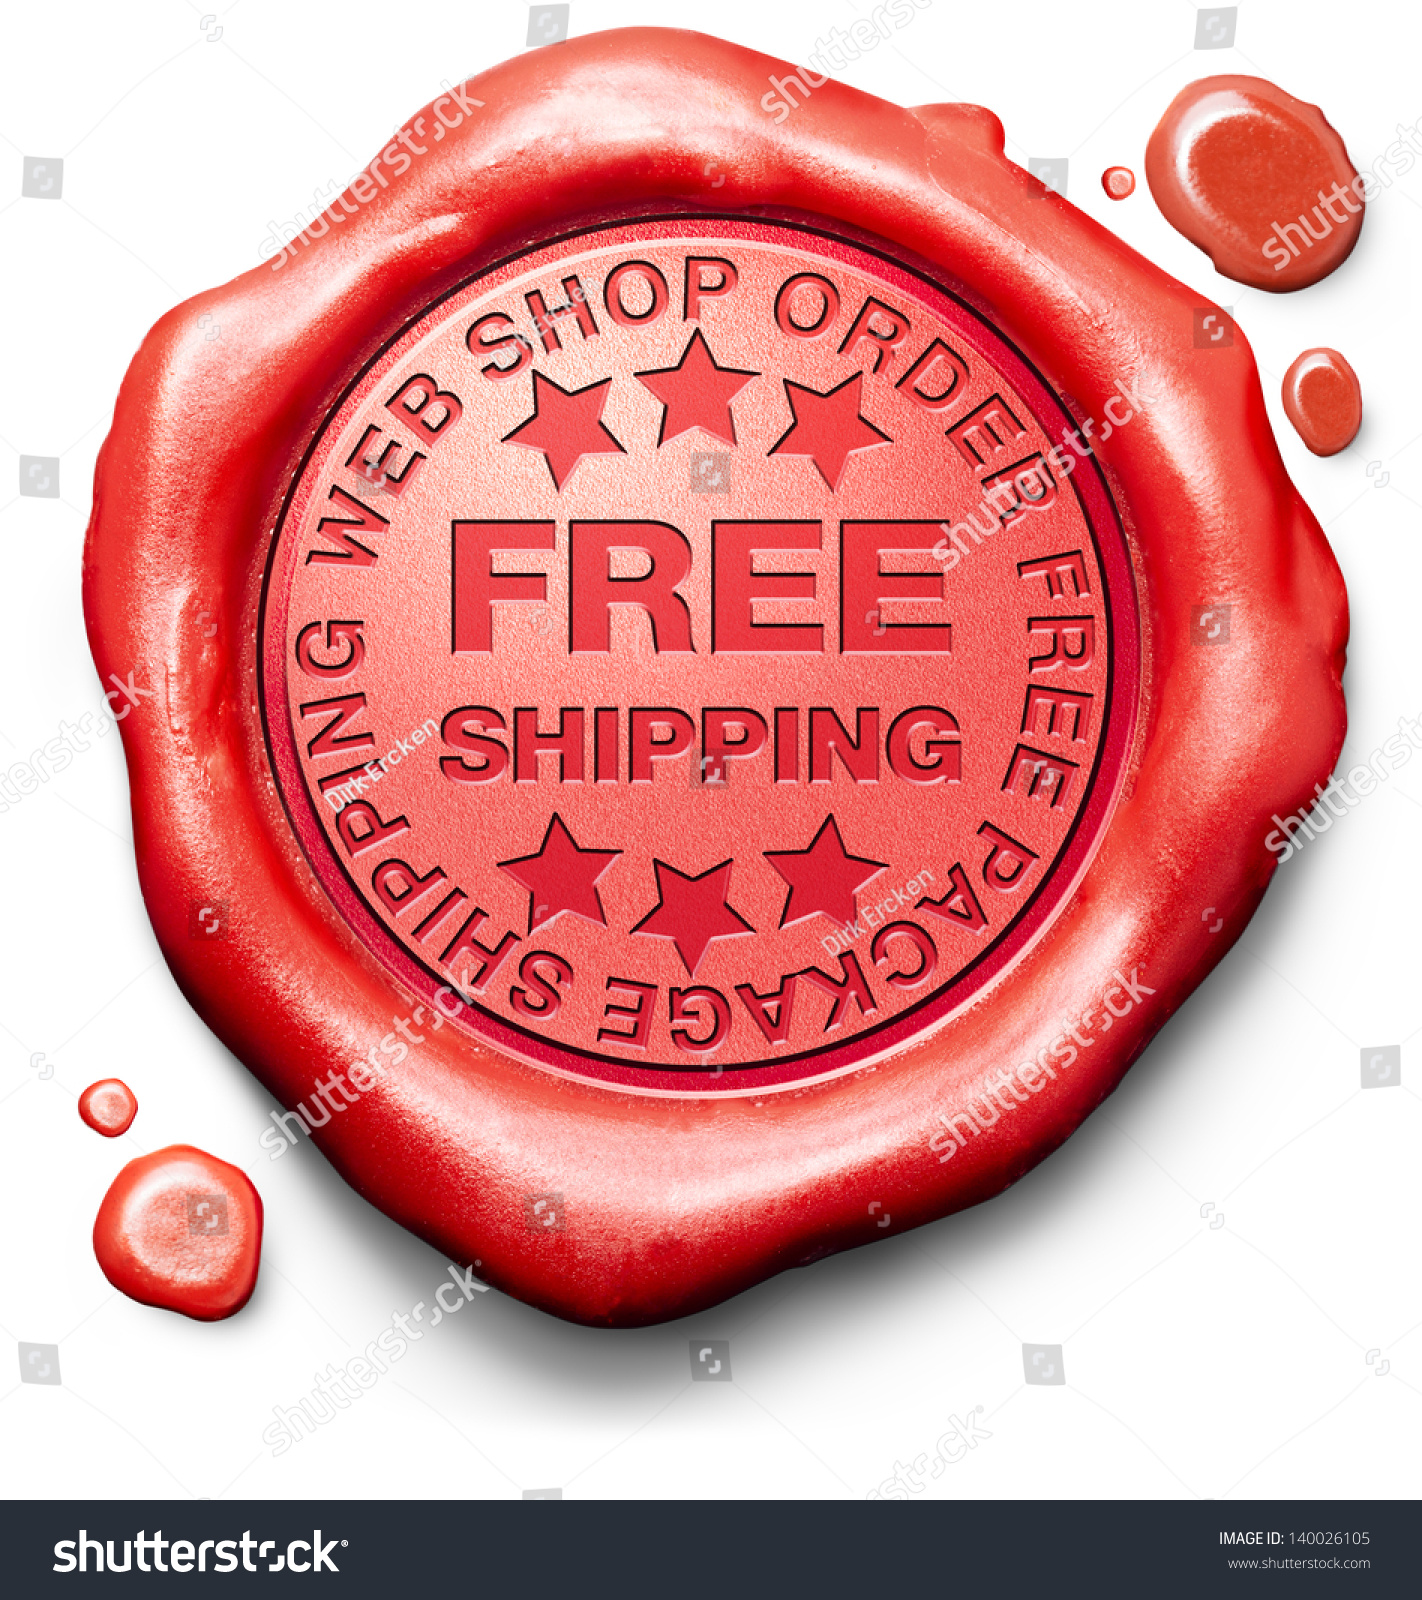 free shipping package delivery online order stock illustration